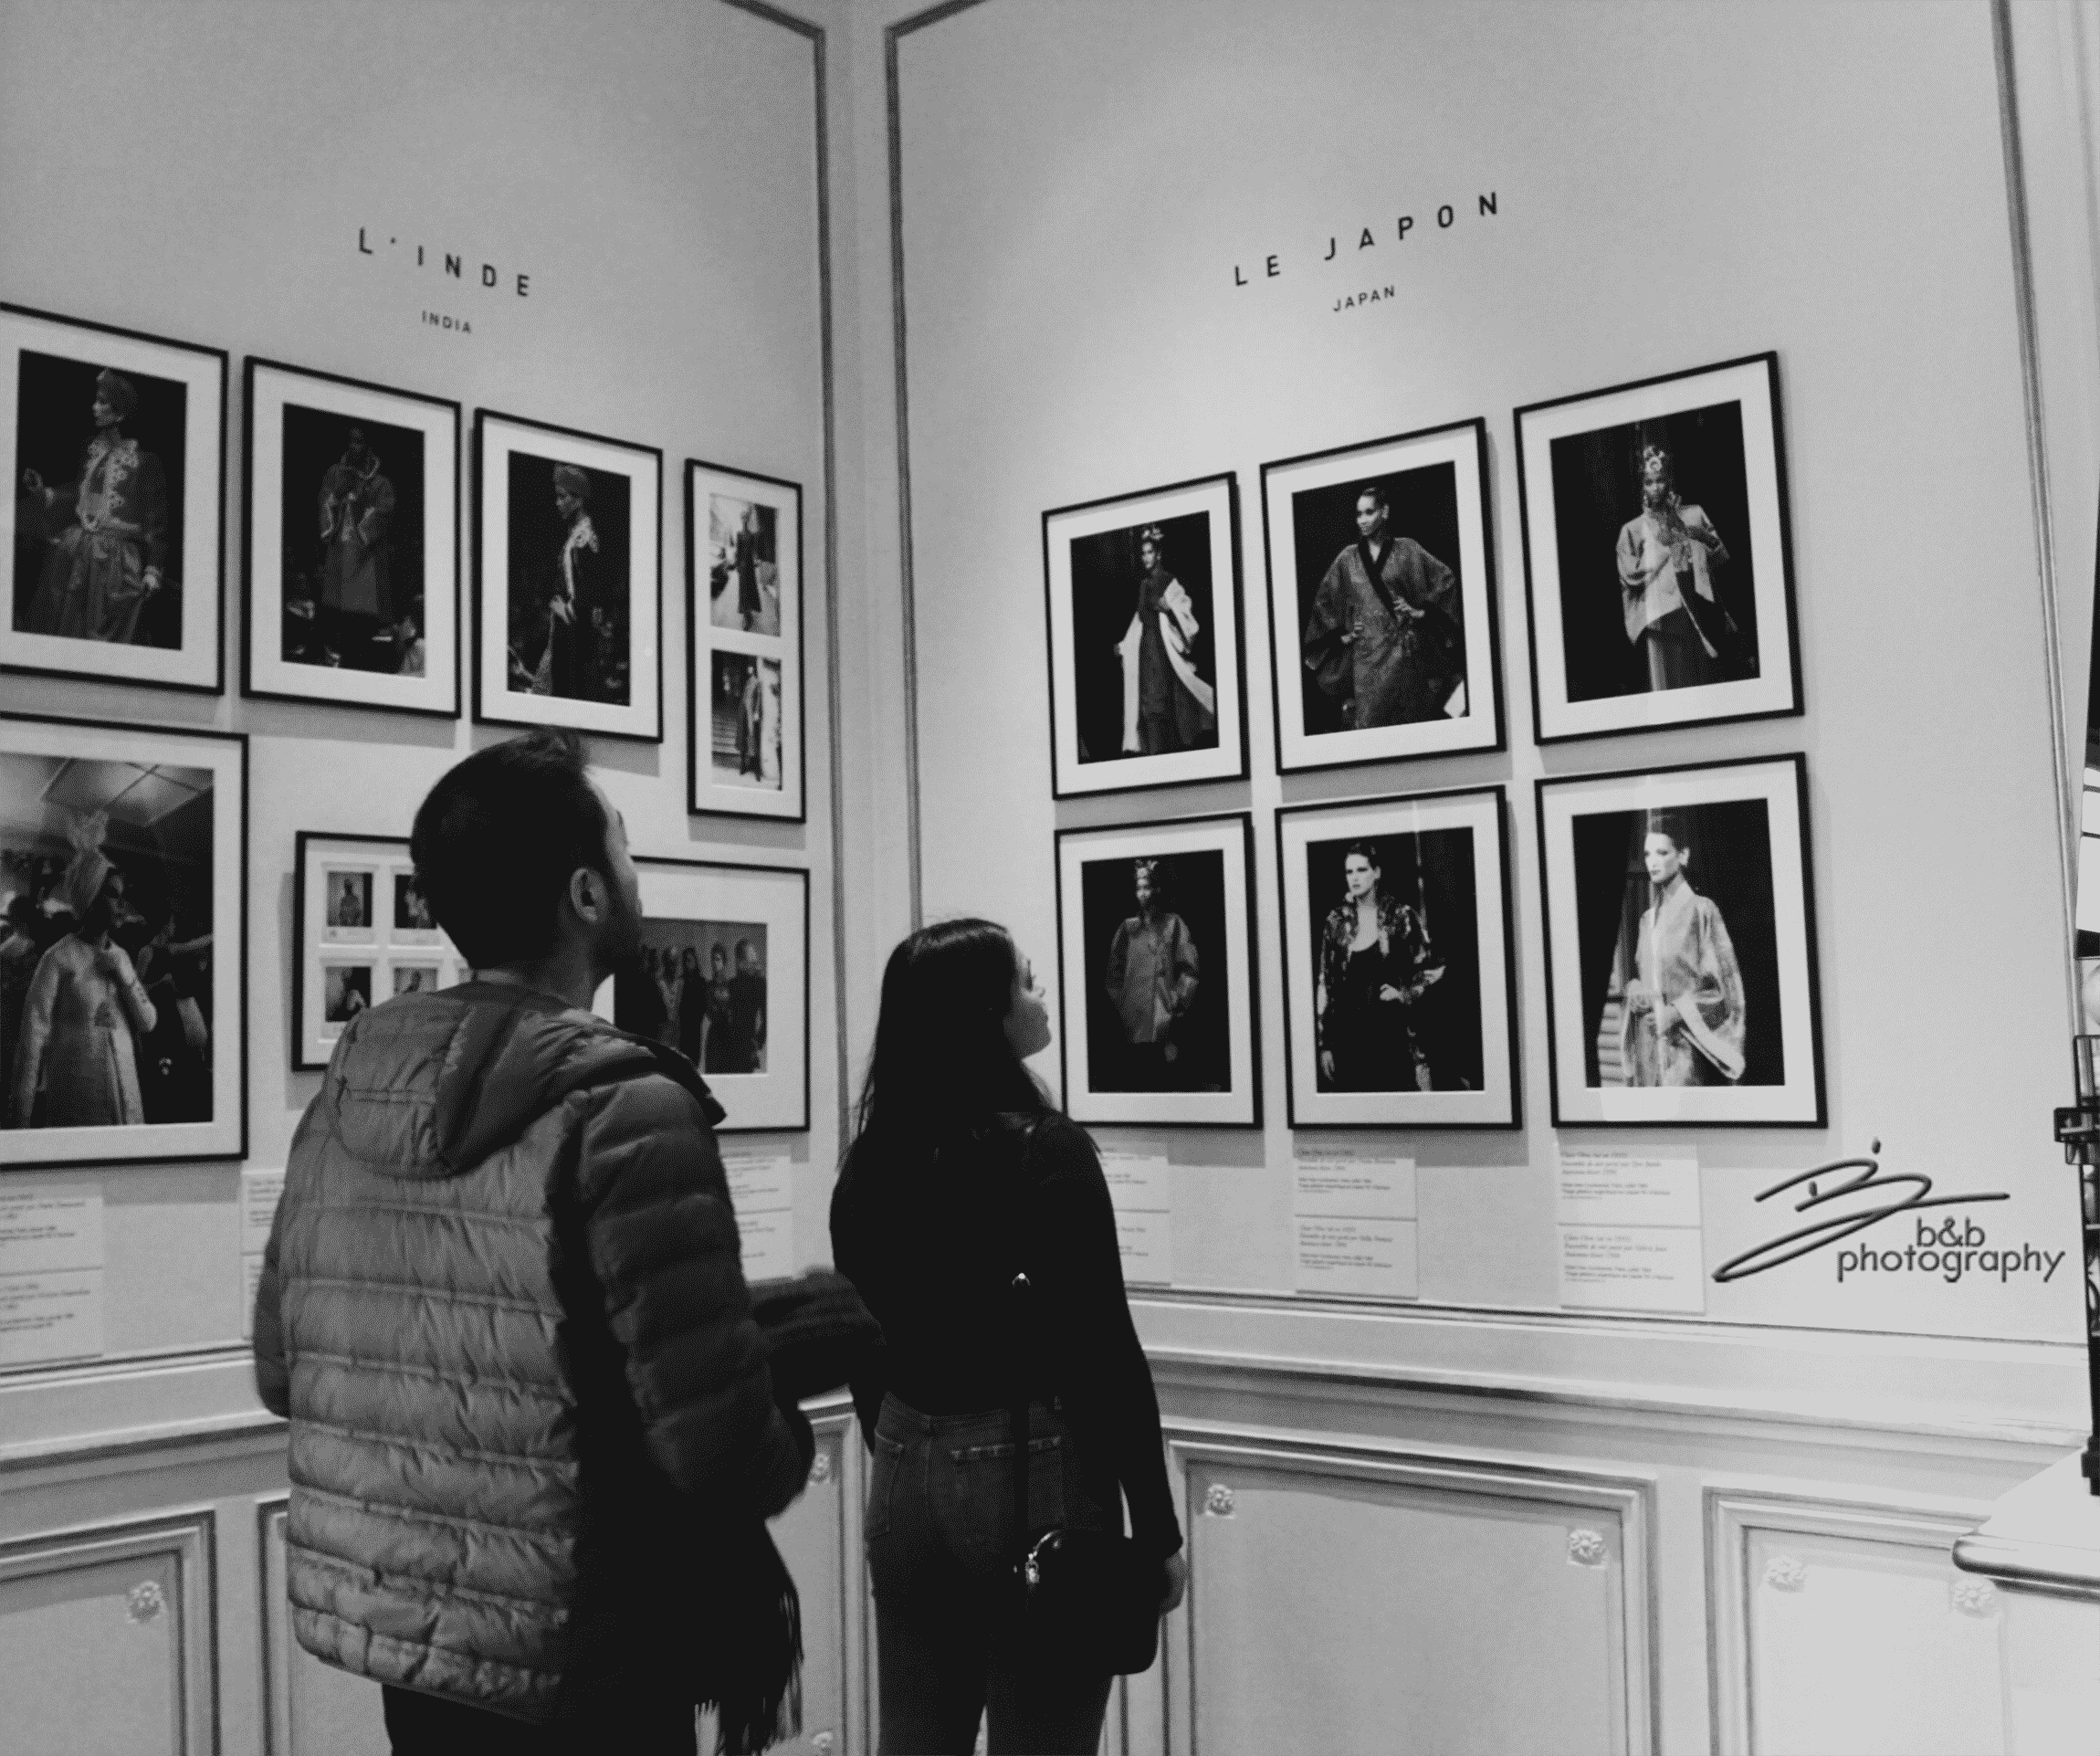 A black and White image of people staring at photos in a gallery